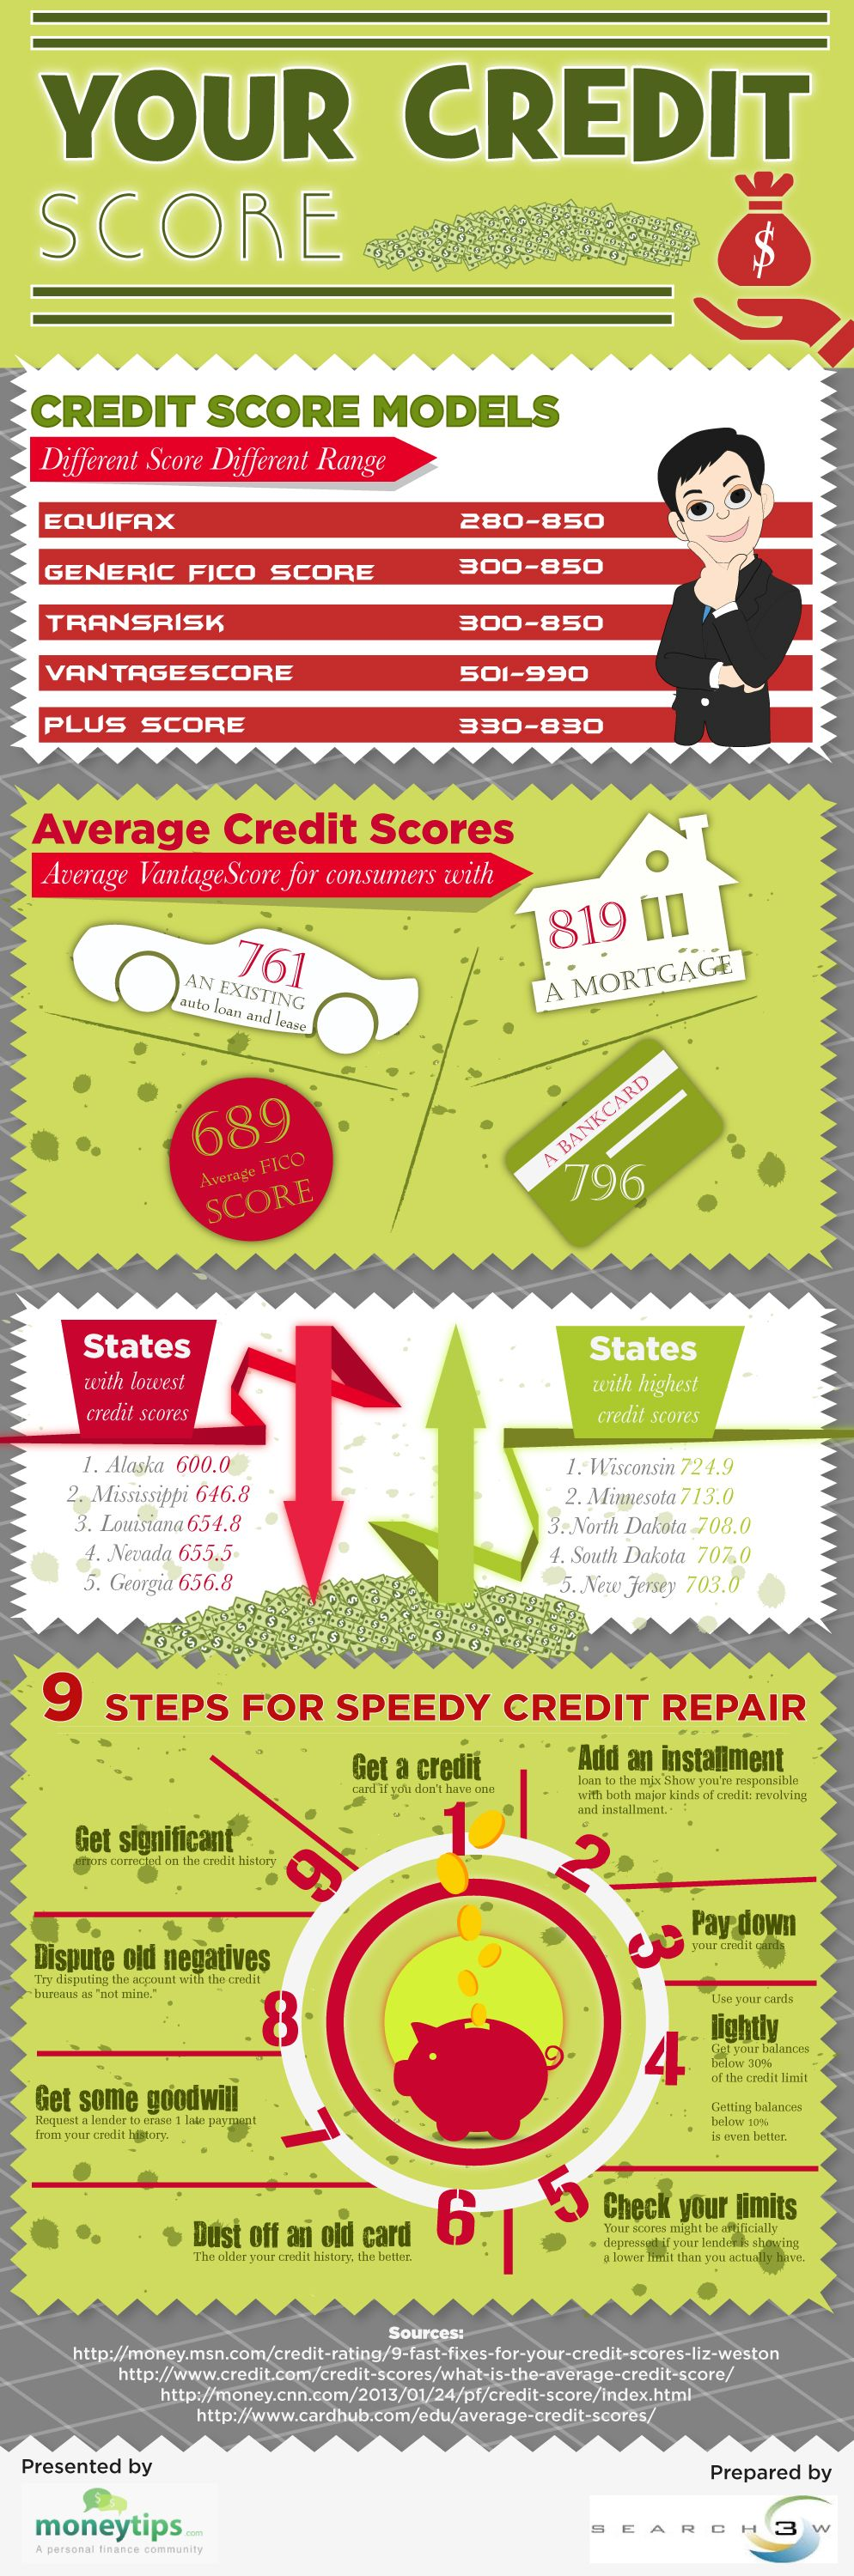 Tips To Score Up Your Credit Score Infographic Credit Repair Improve Credit Score Credit Score Infographic